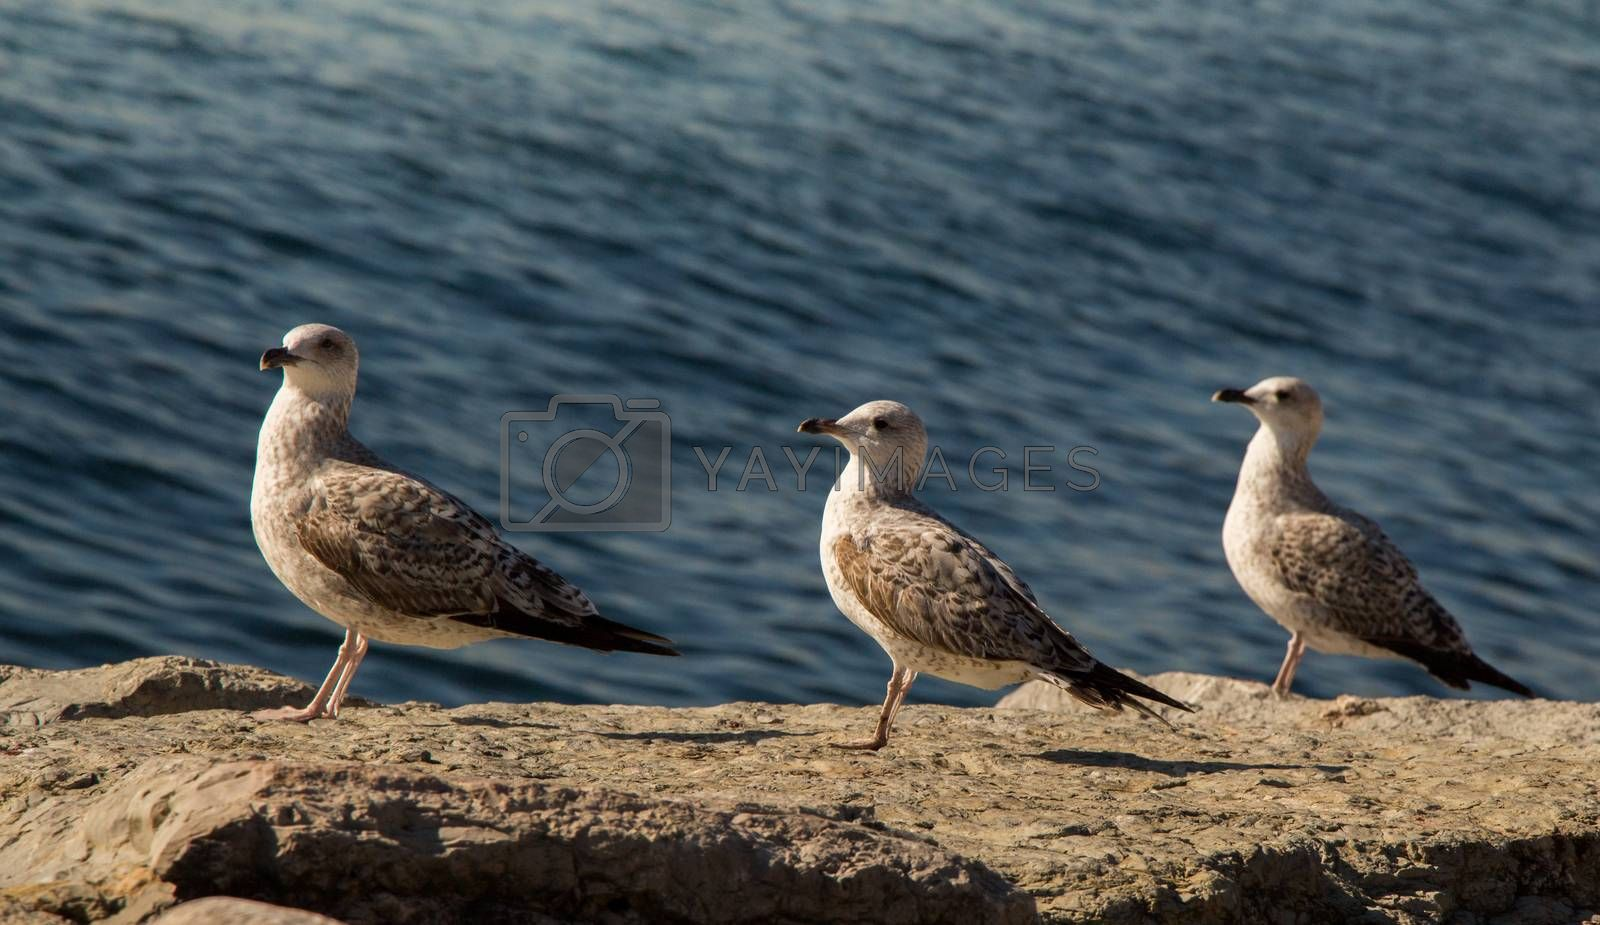 Seagulls are on the rock by the sea waters